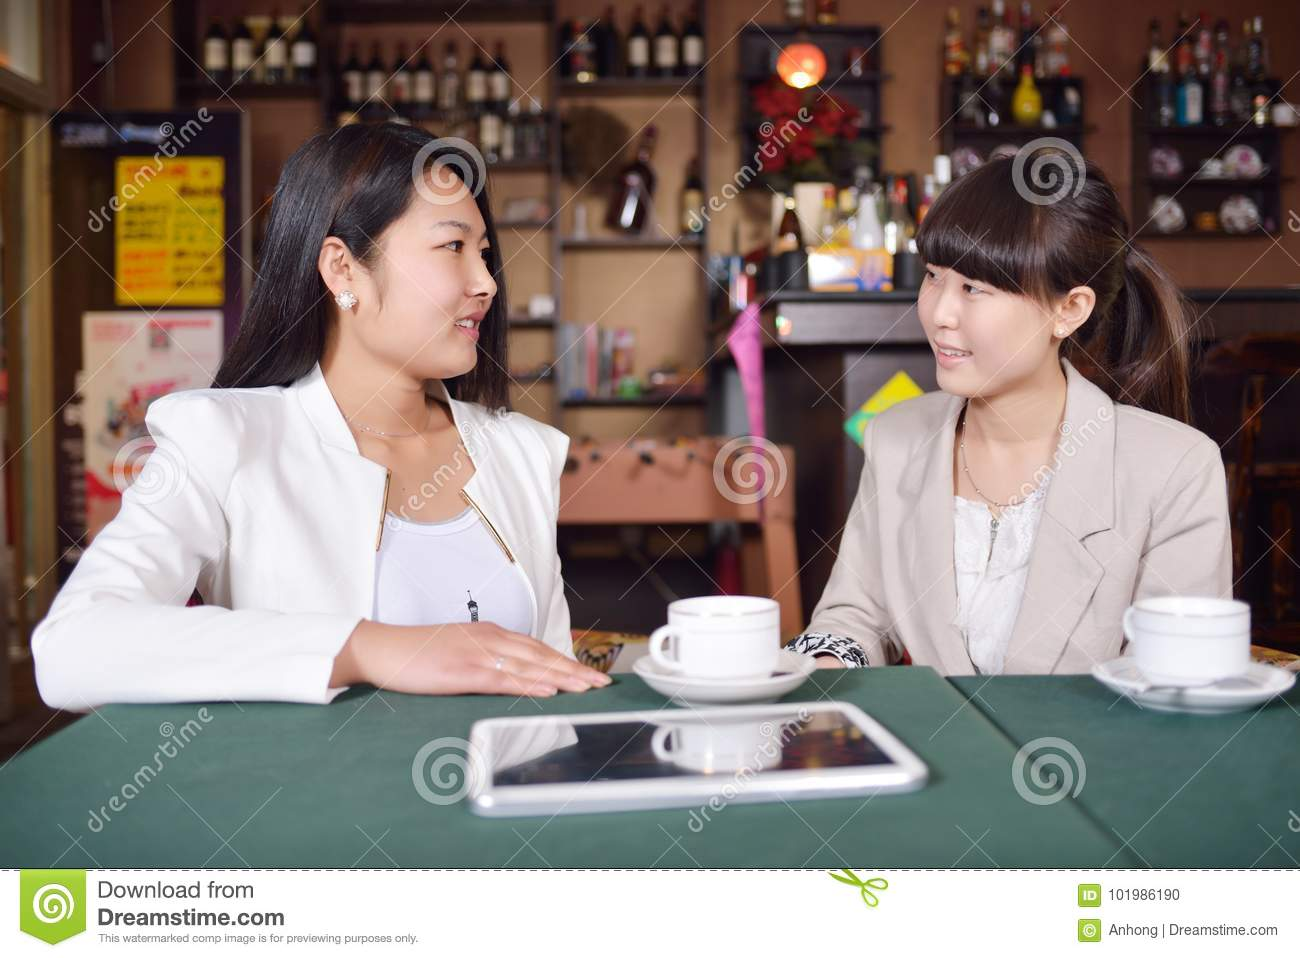 Cafe young girls chat stock photo. Image of adult, cheerful ...